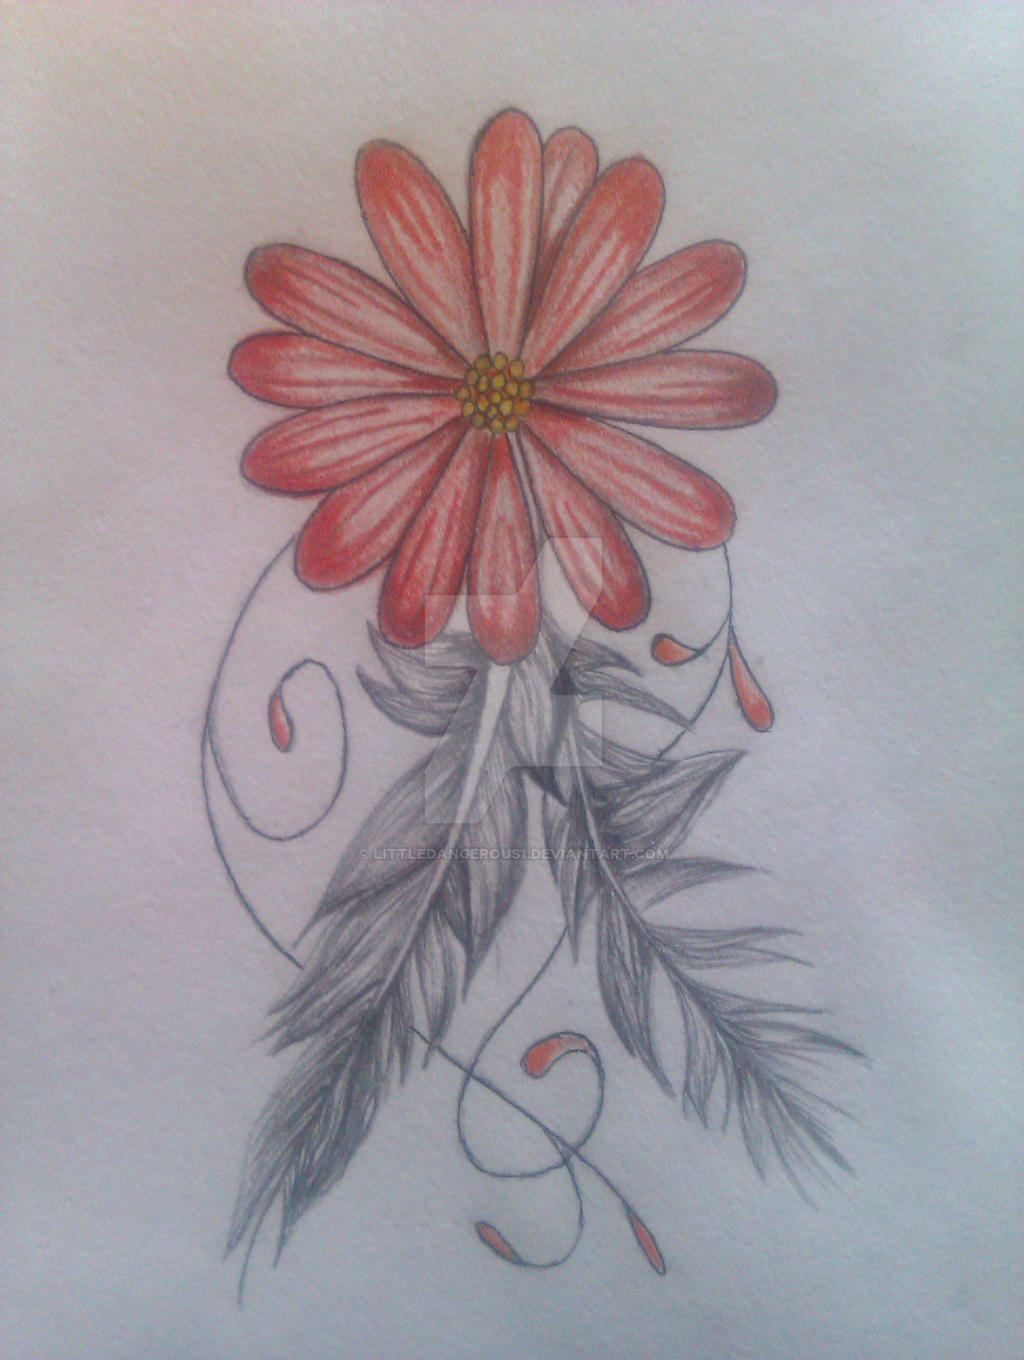 Tattoo Design Flower And Feather By Littledangerous1 On Deviantart